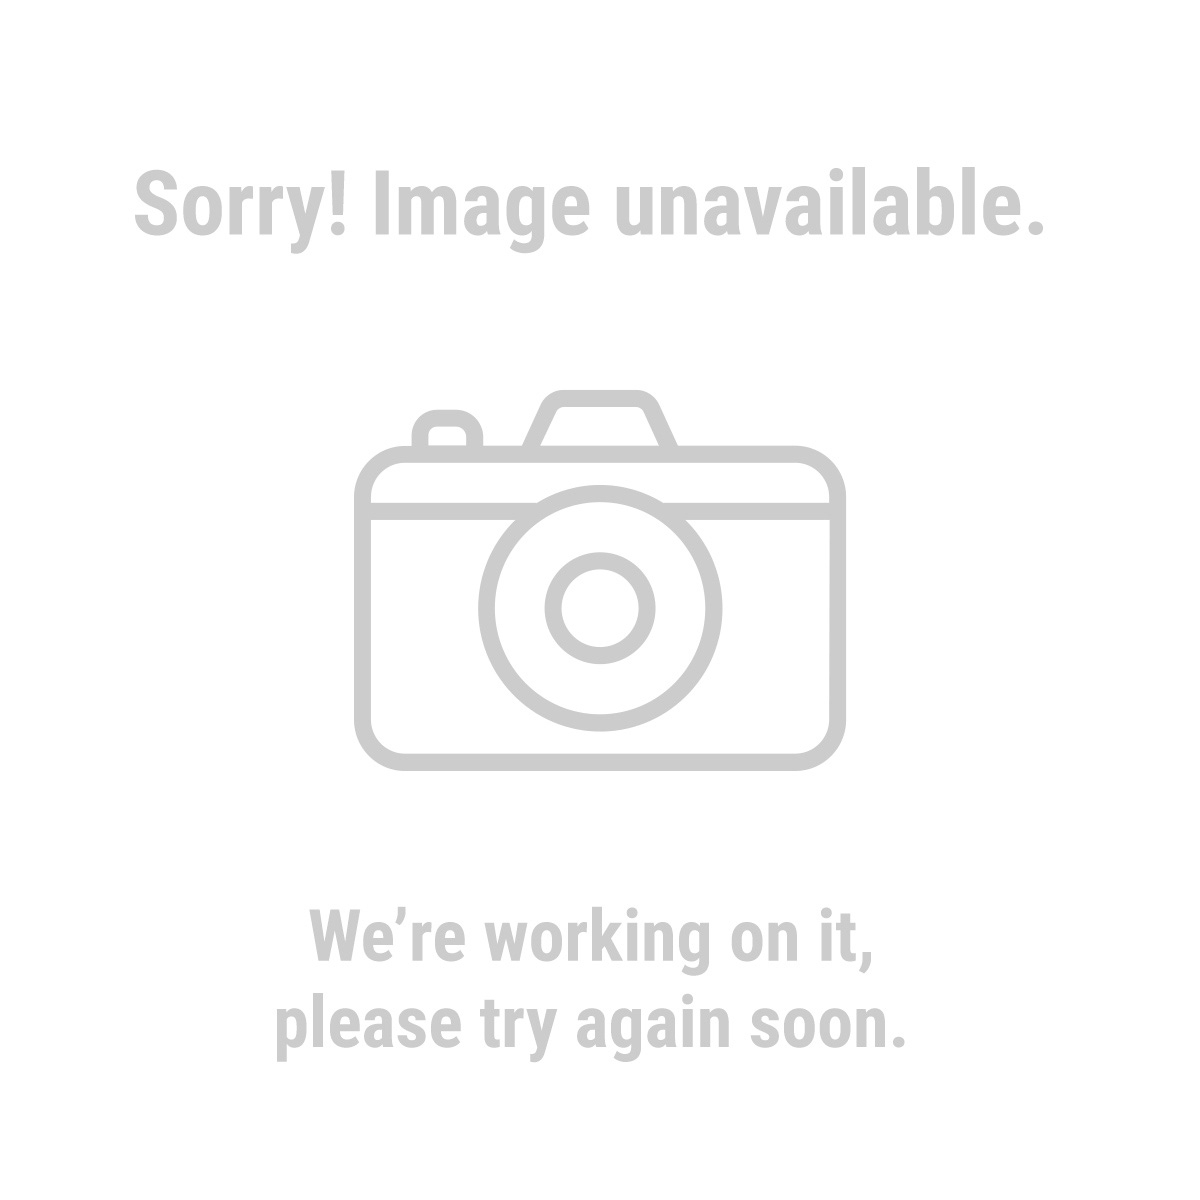 46908 Blue Glow Mini Off-Road Fog Lights